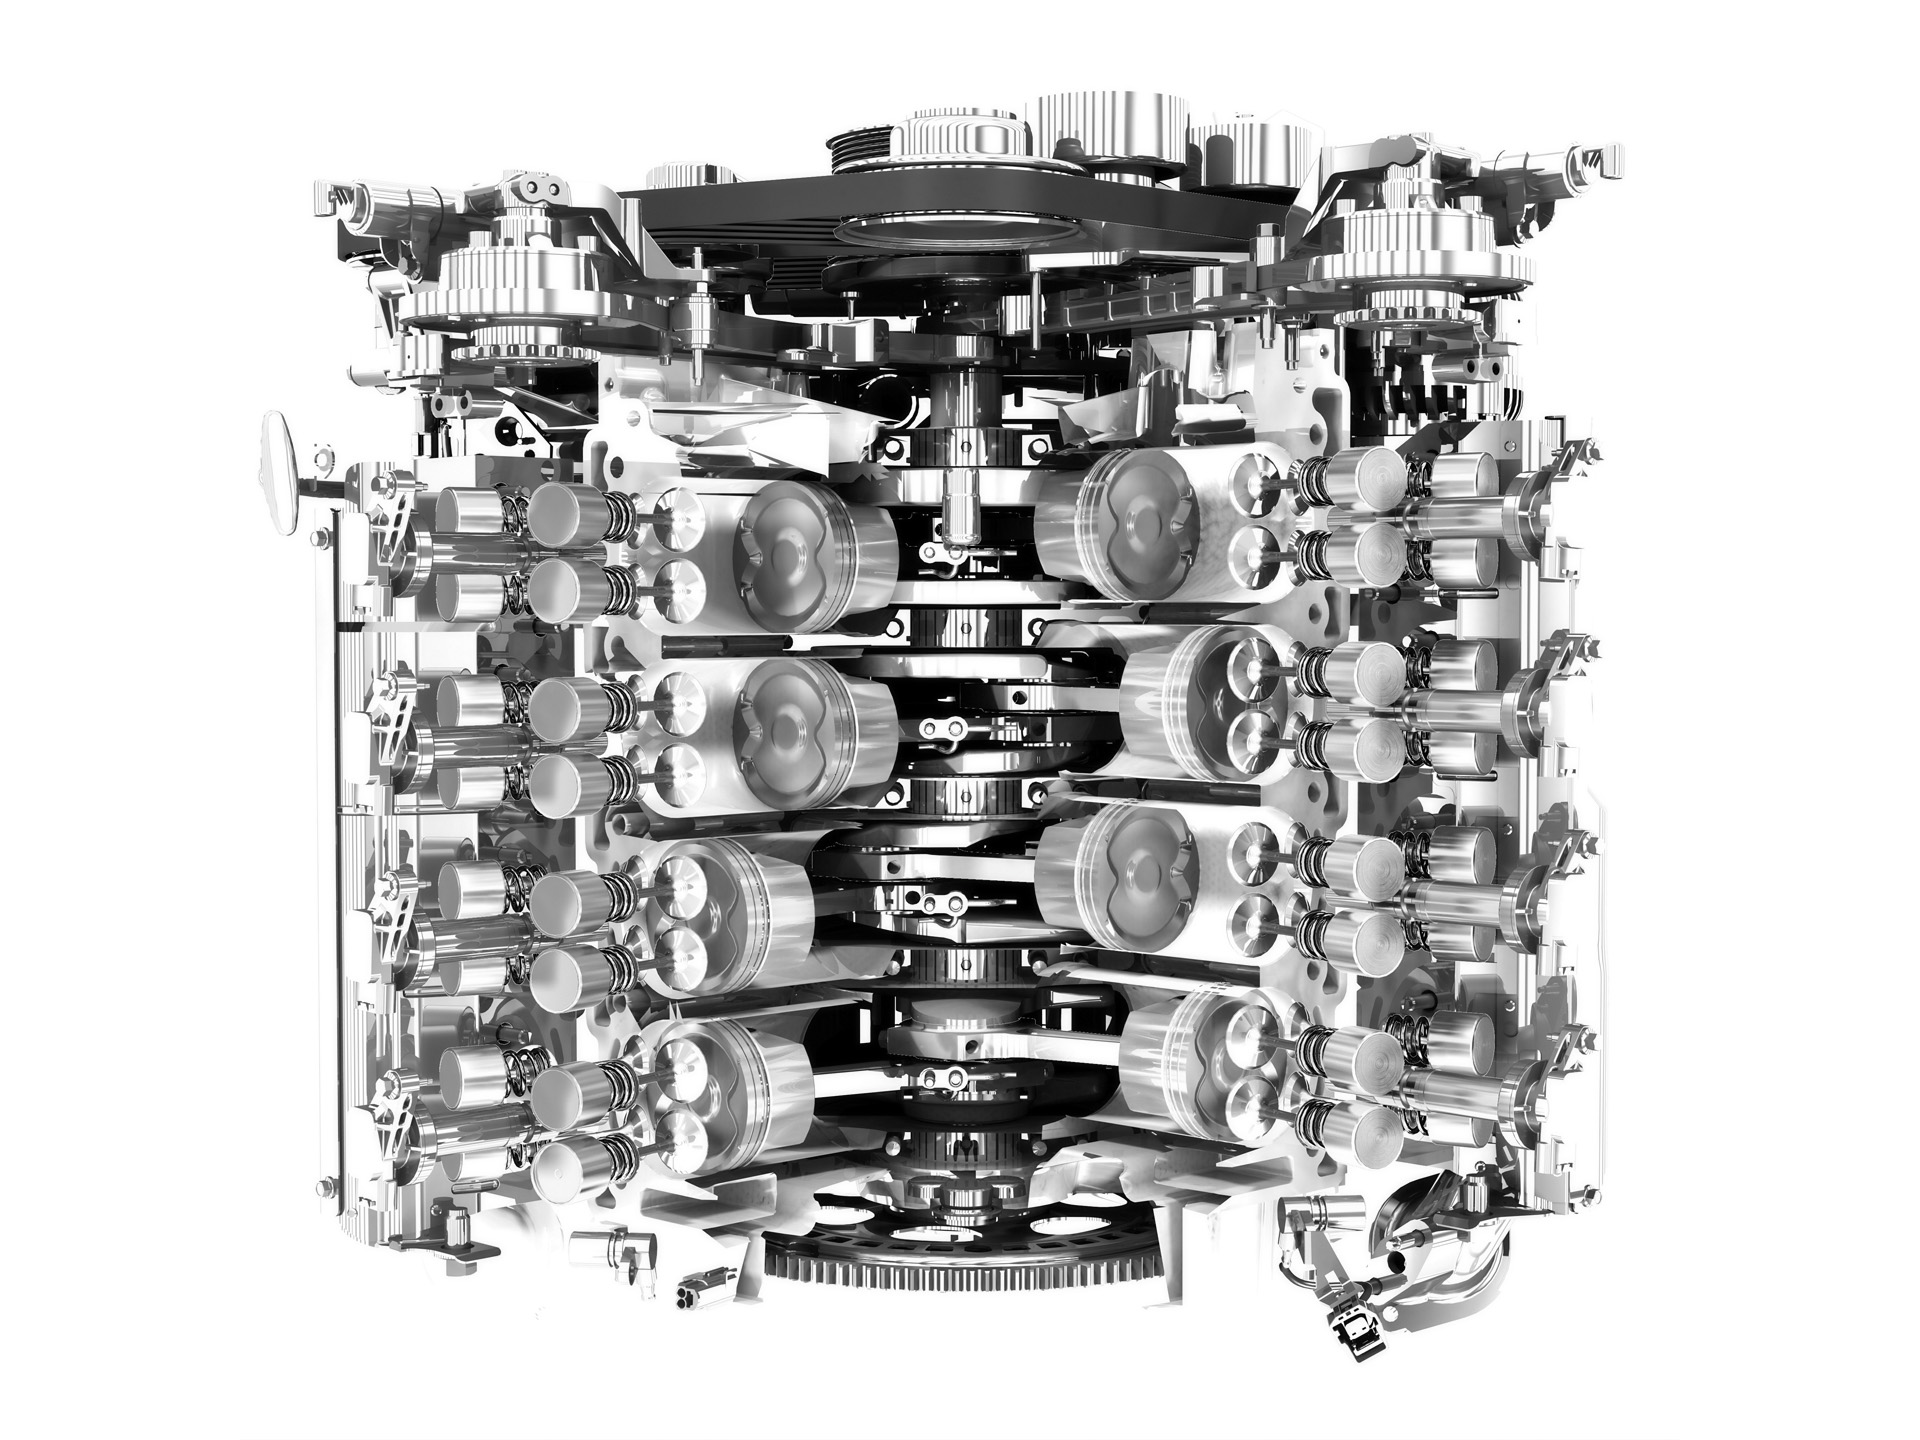 Sample P0220 Engine